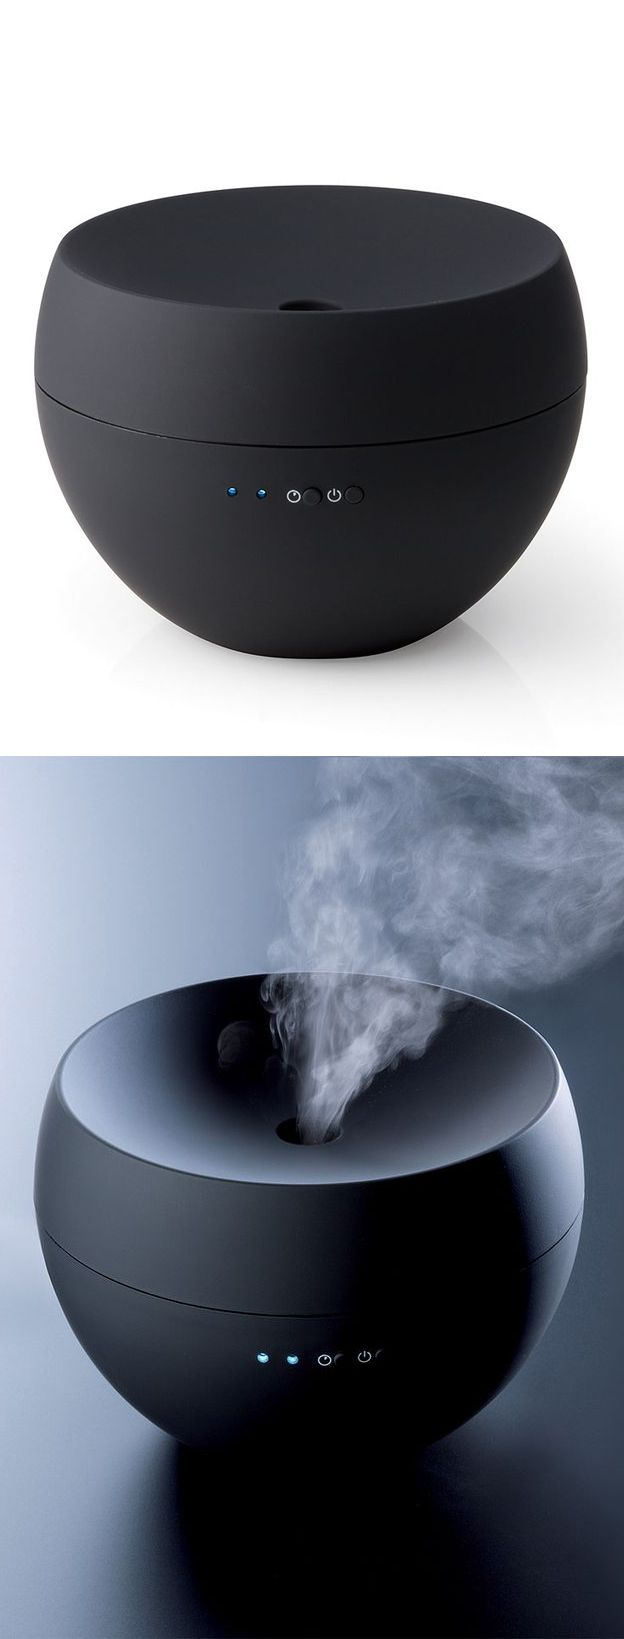 Black Jasmine Aroma Diffuser // the ultra-sonic technology blends essential oil and water together to create a fine mist that fills the room for up to 24 hours